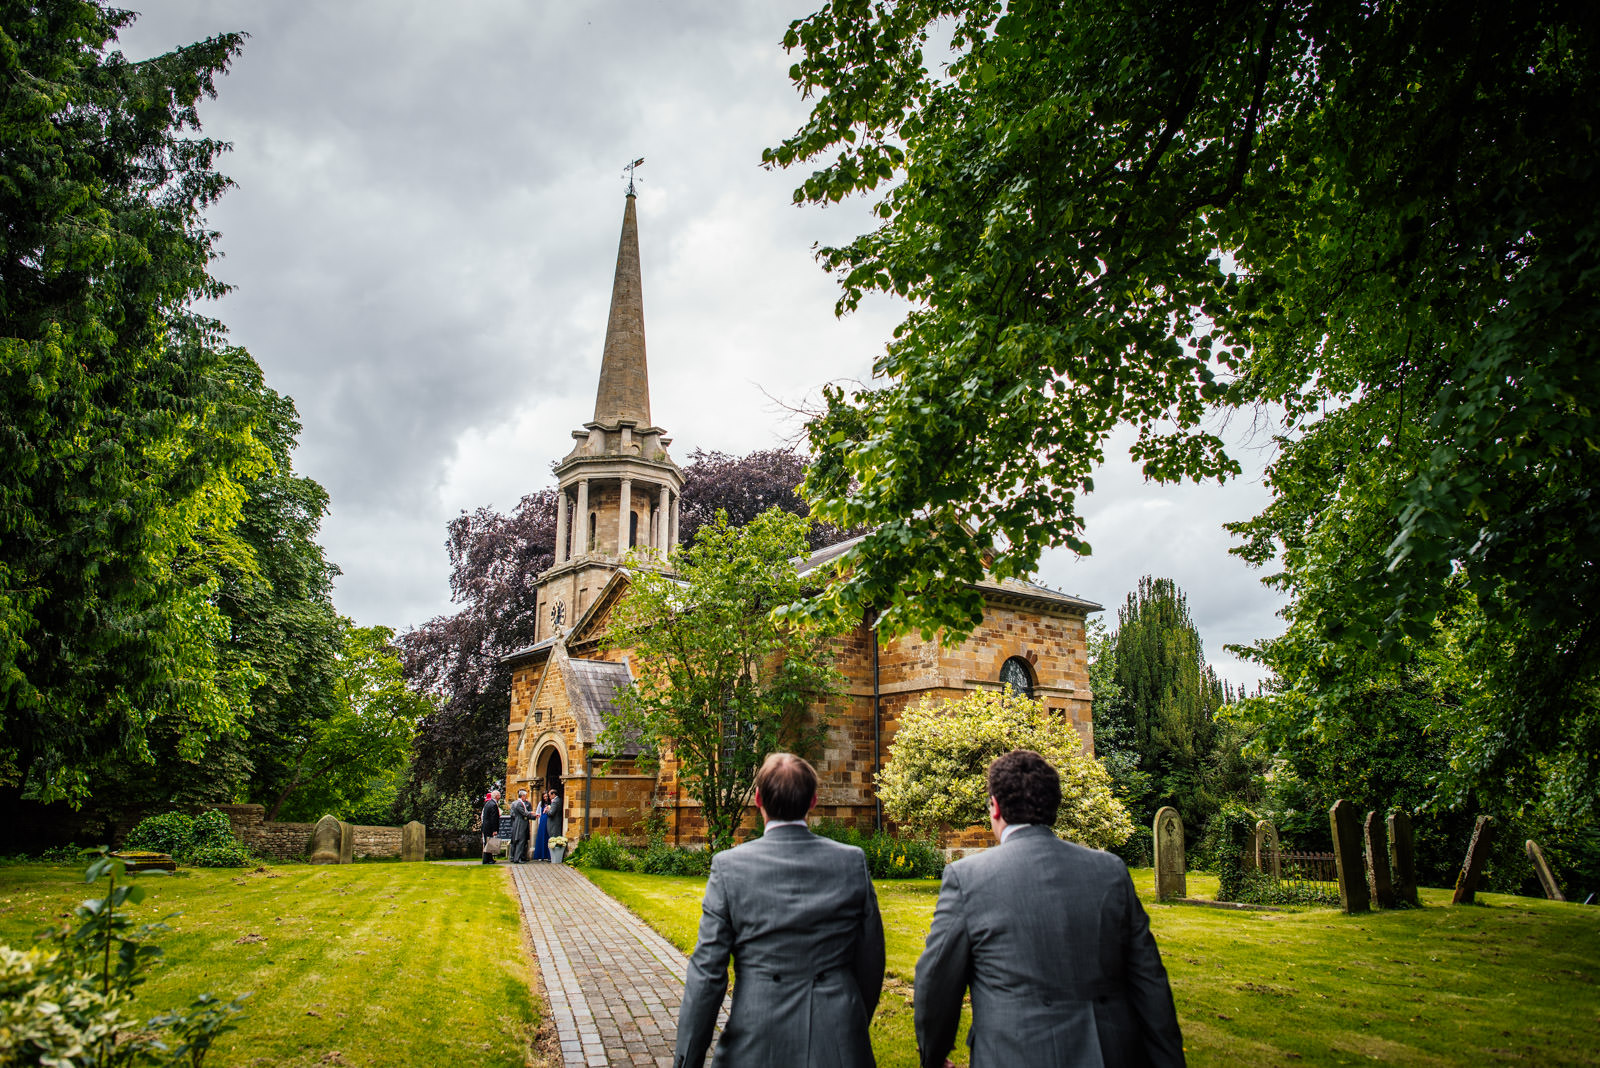 groom and groomsman walk to the church